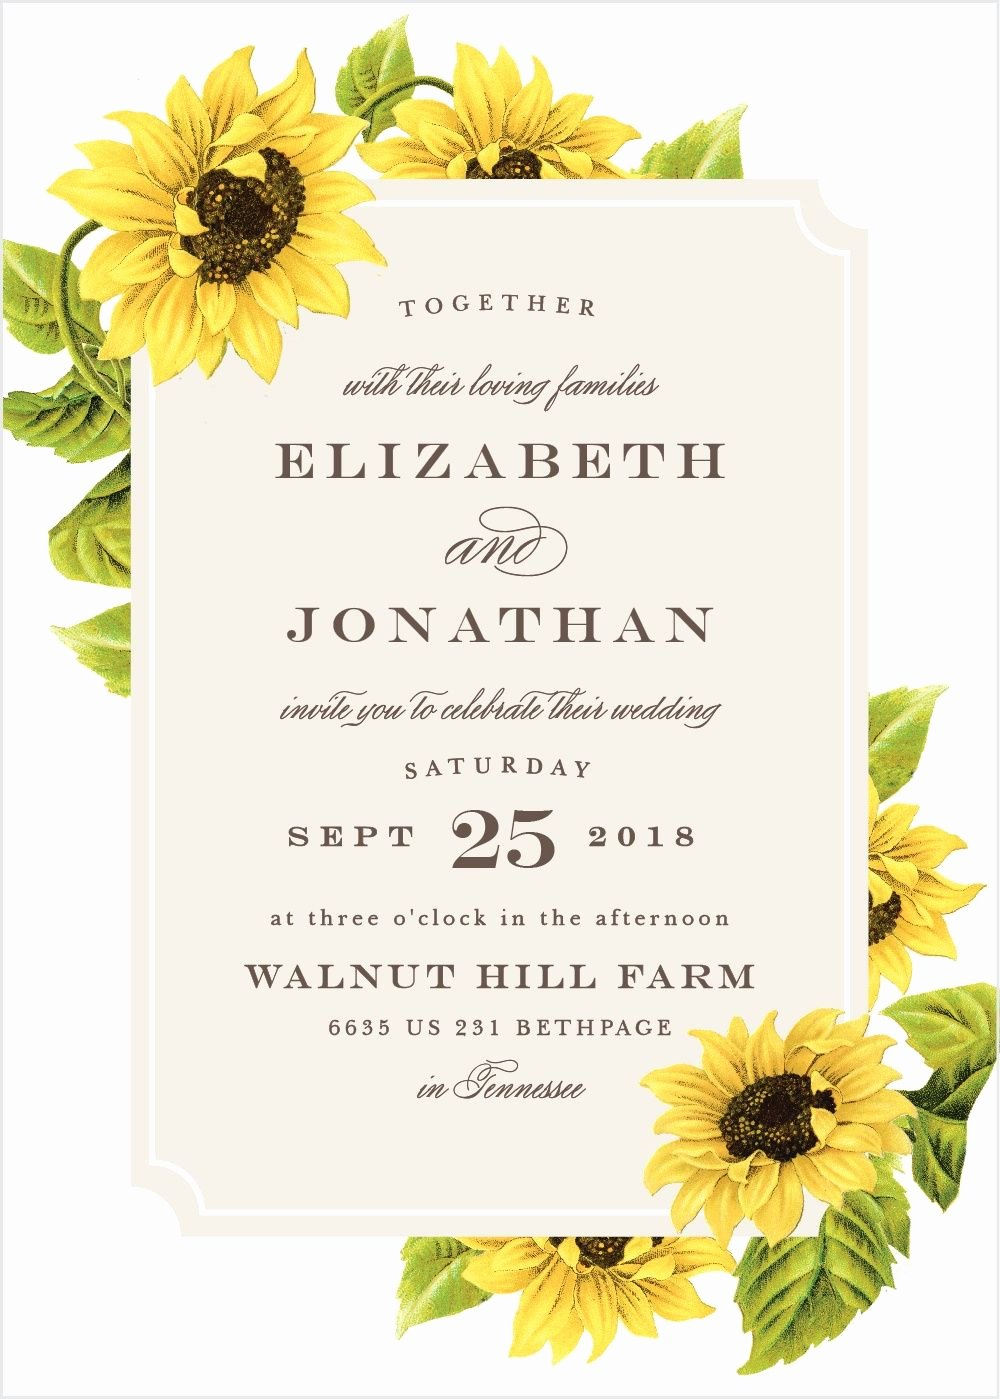 Sunflower Wedding Invitations Templates New Sunflower Frame Wedding Invitations In 2019 Invitation Ideas